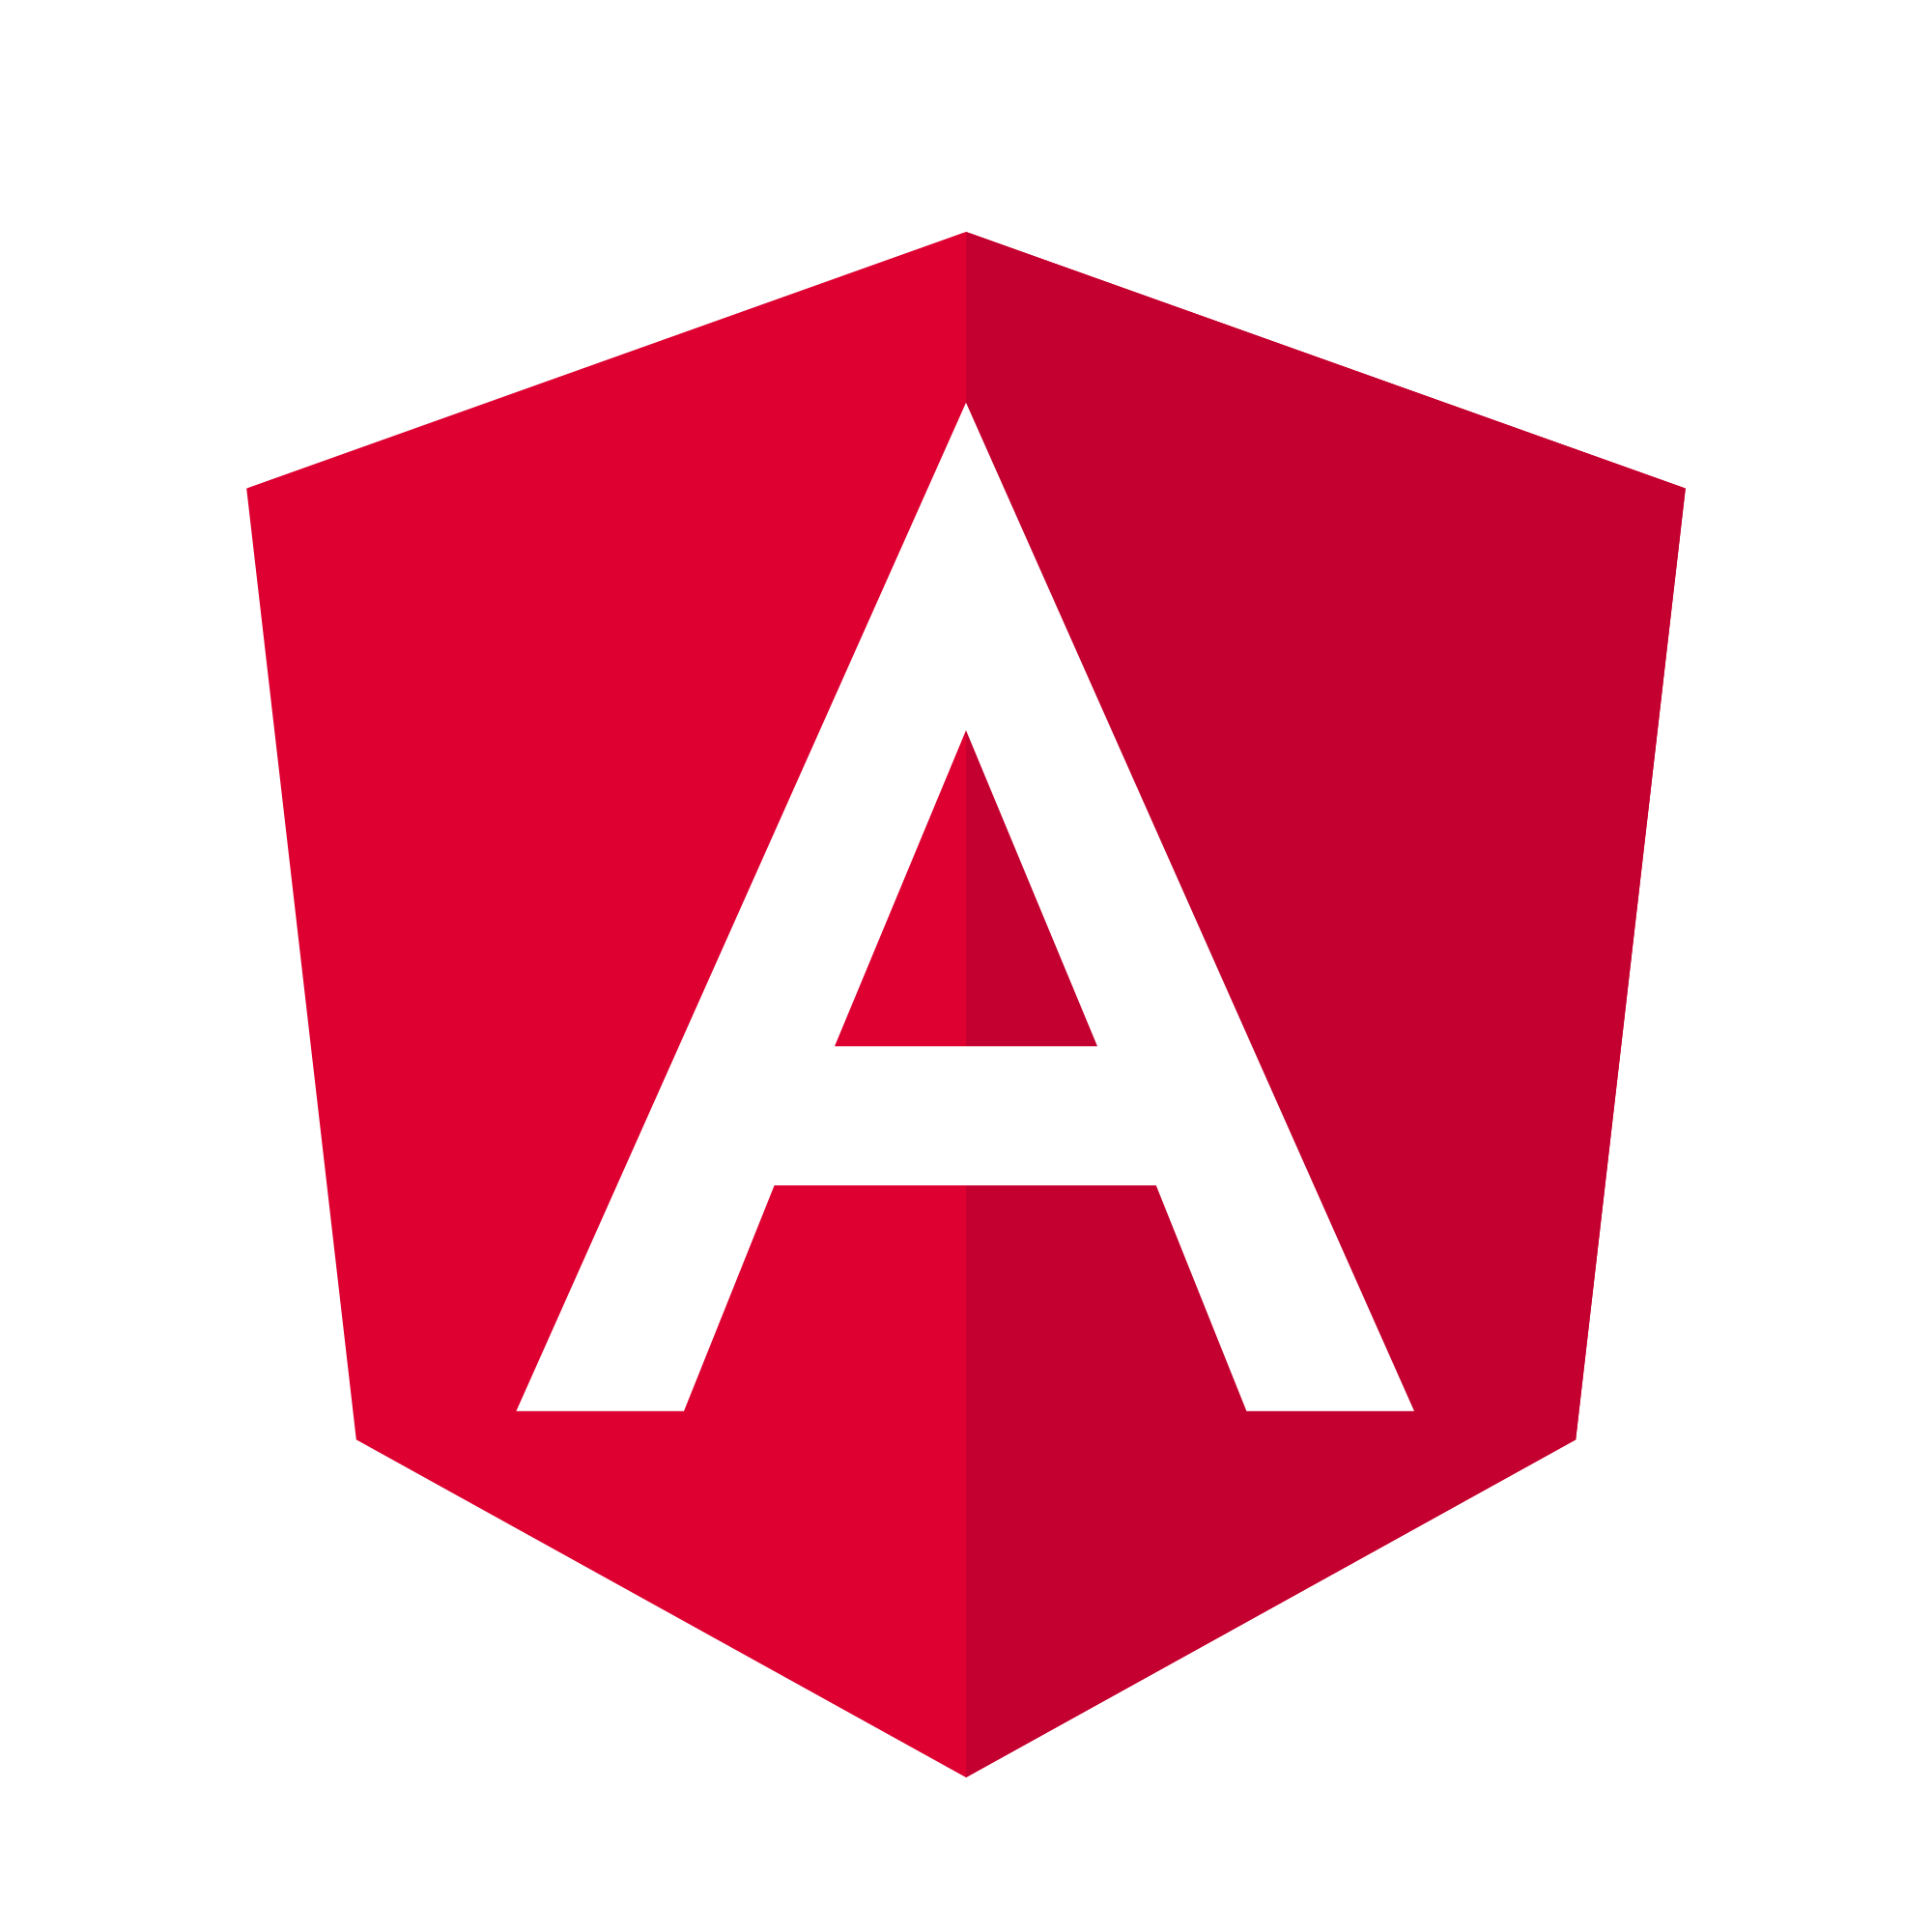 Testing Angular components with @Input() - Aiko Klostermann